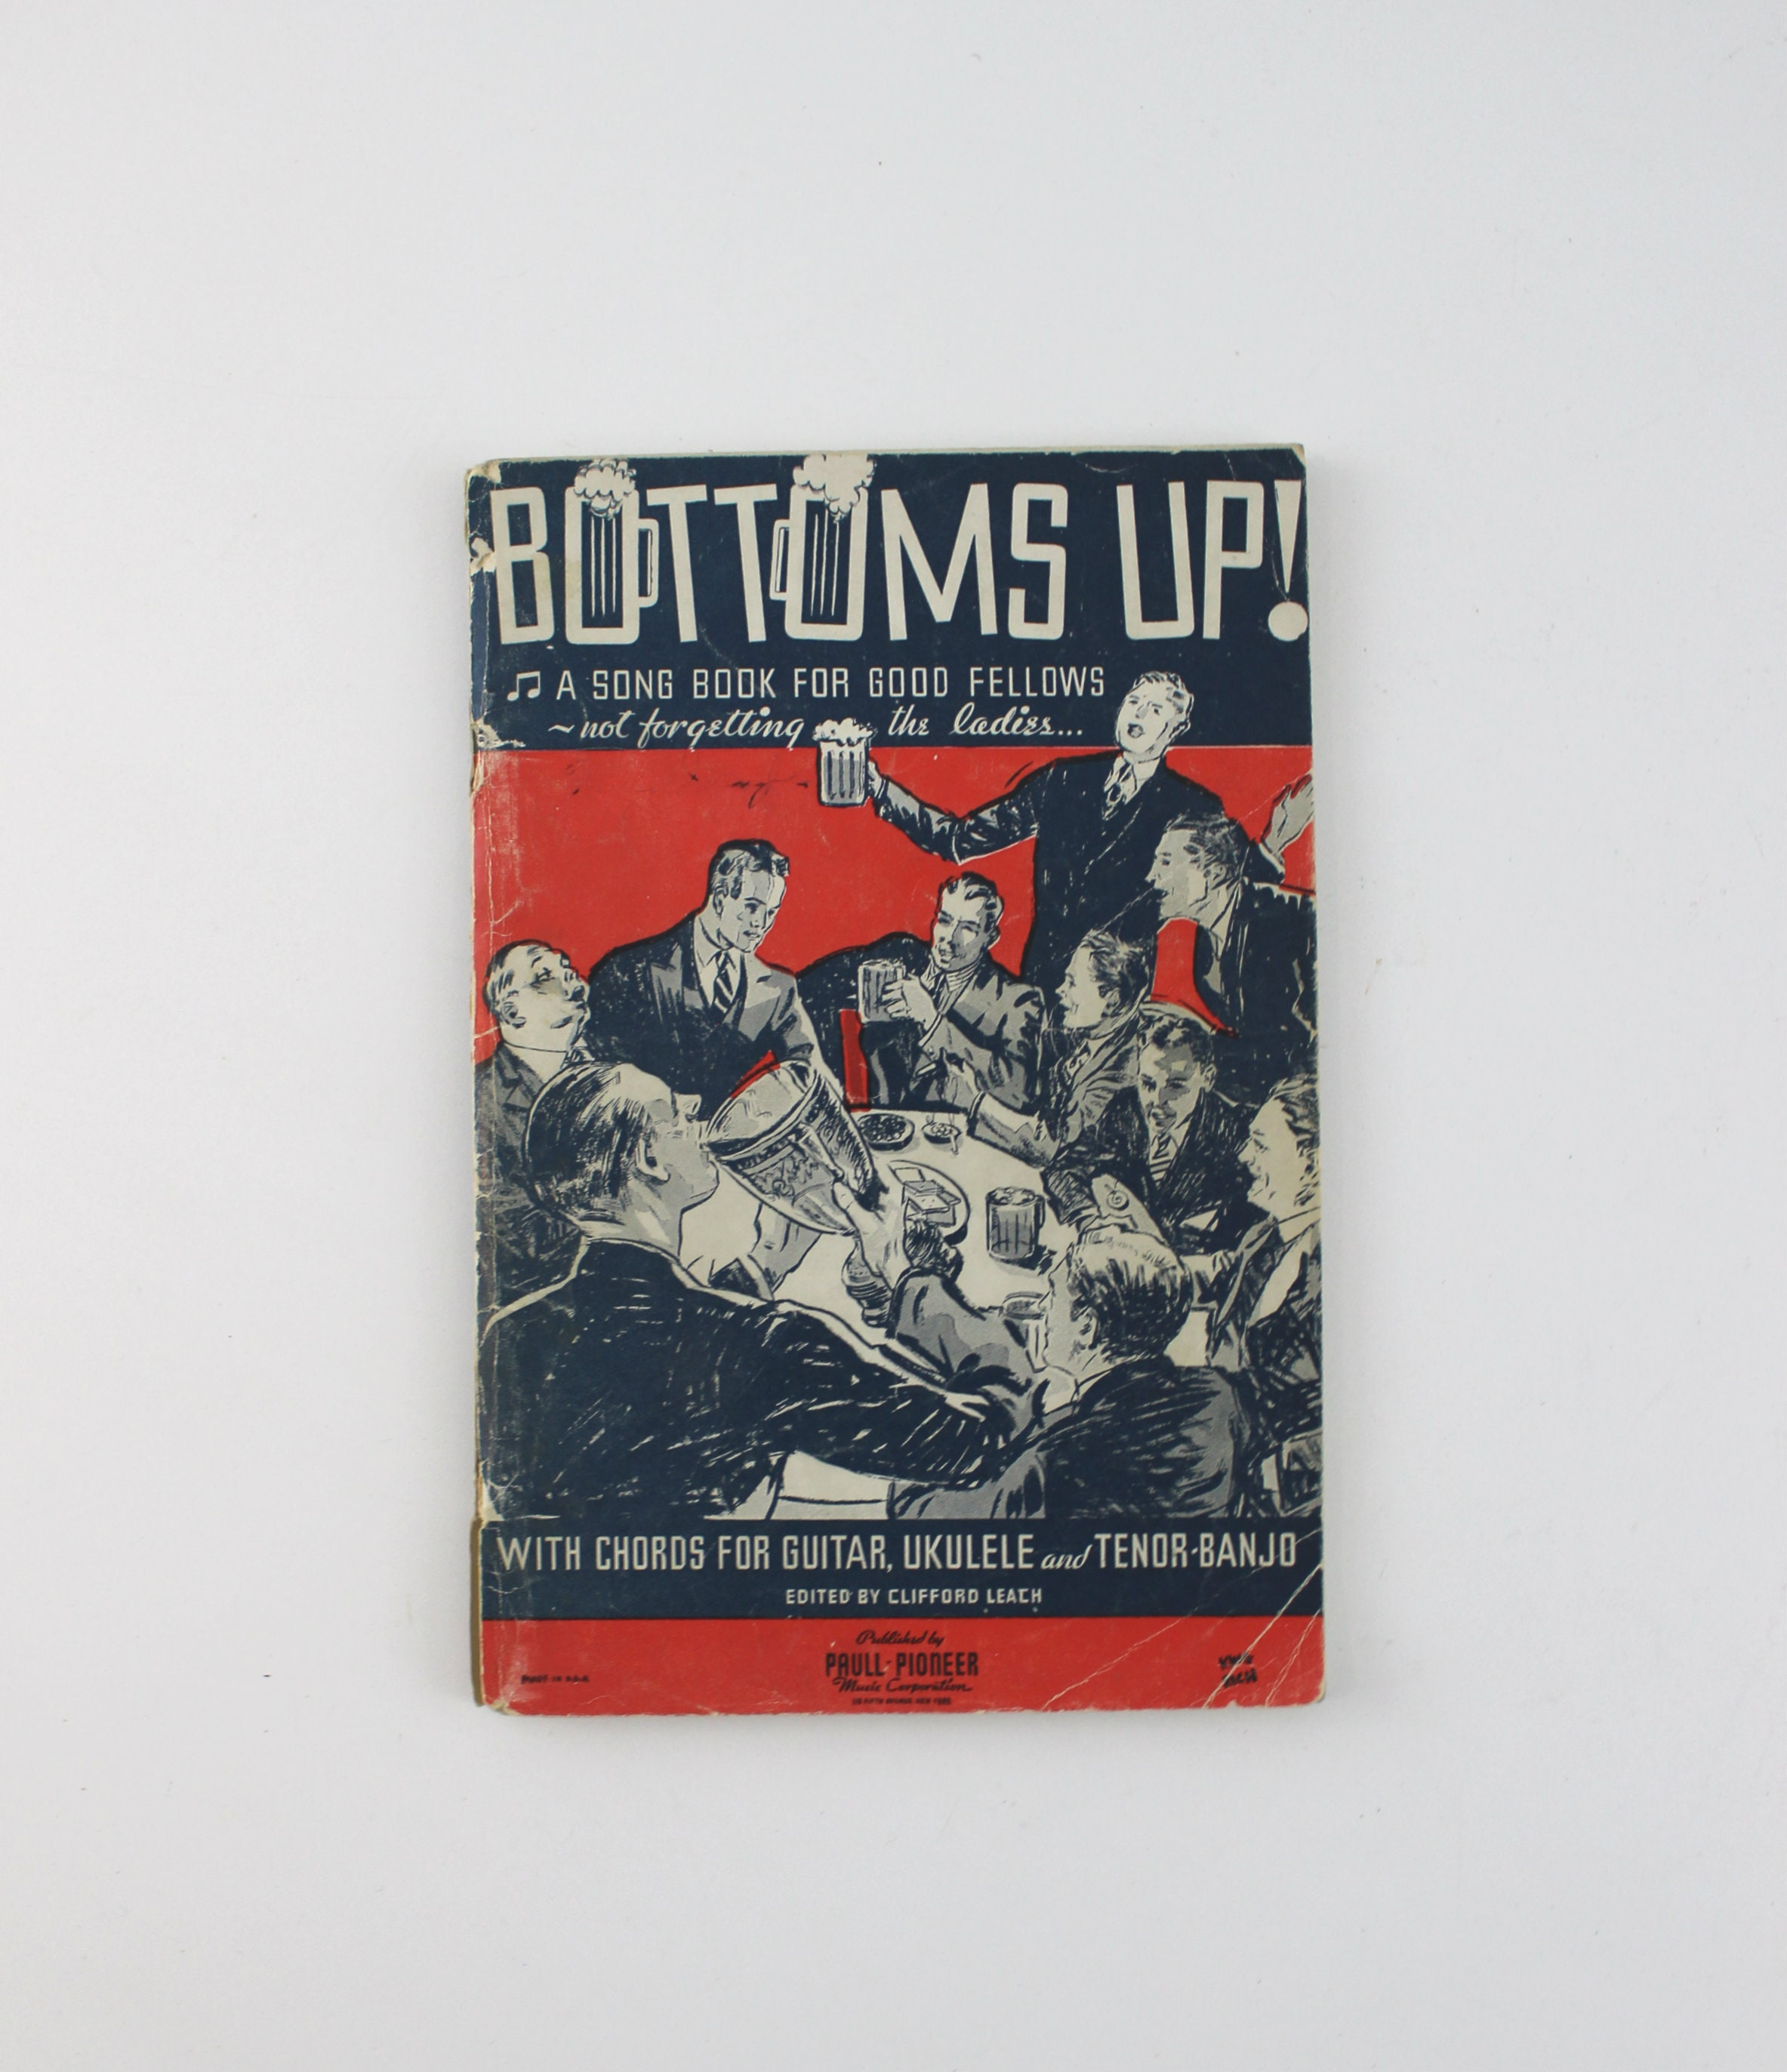 1930s Bottoms Up A Song Book For Good Fellows Sheet Music Etsy